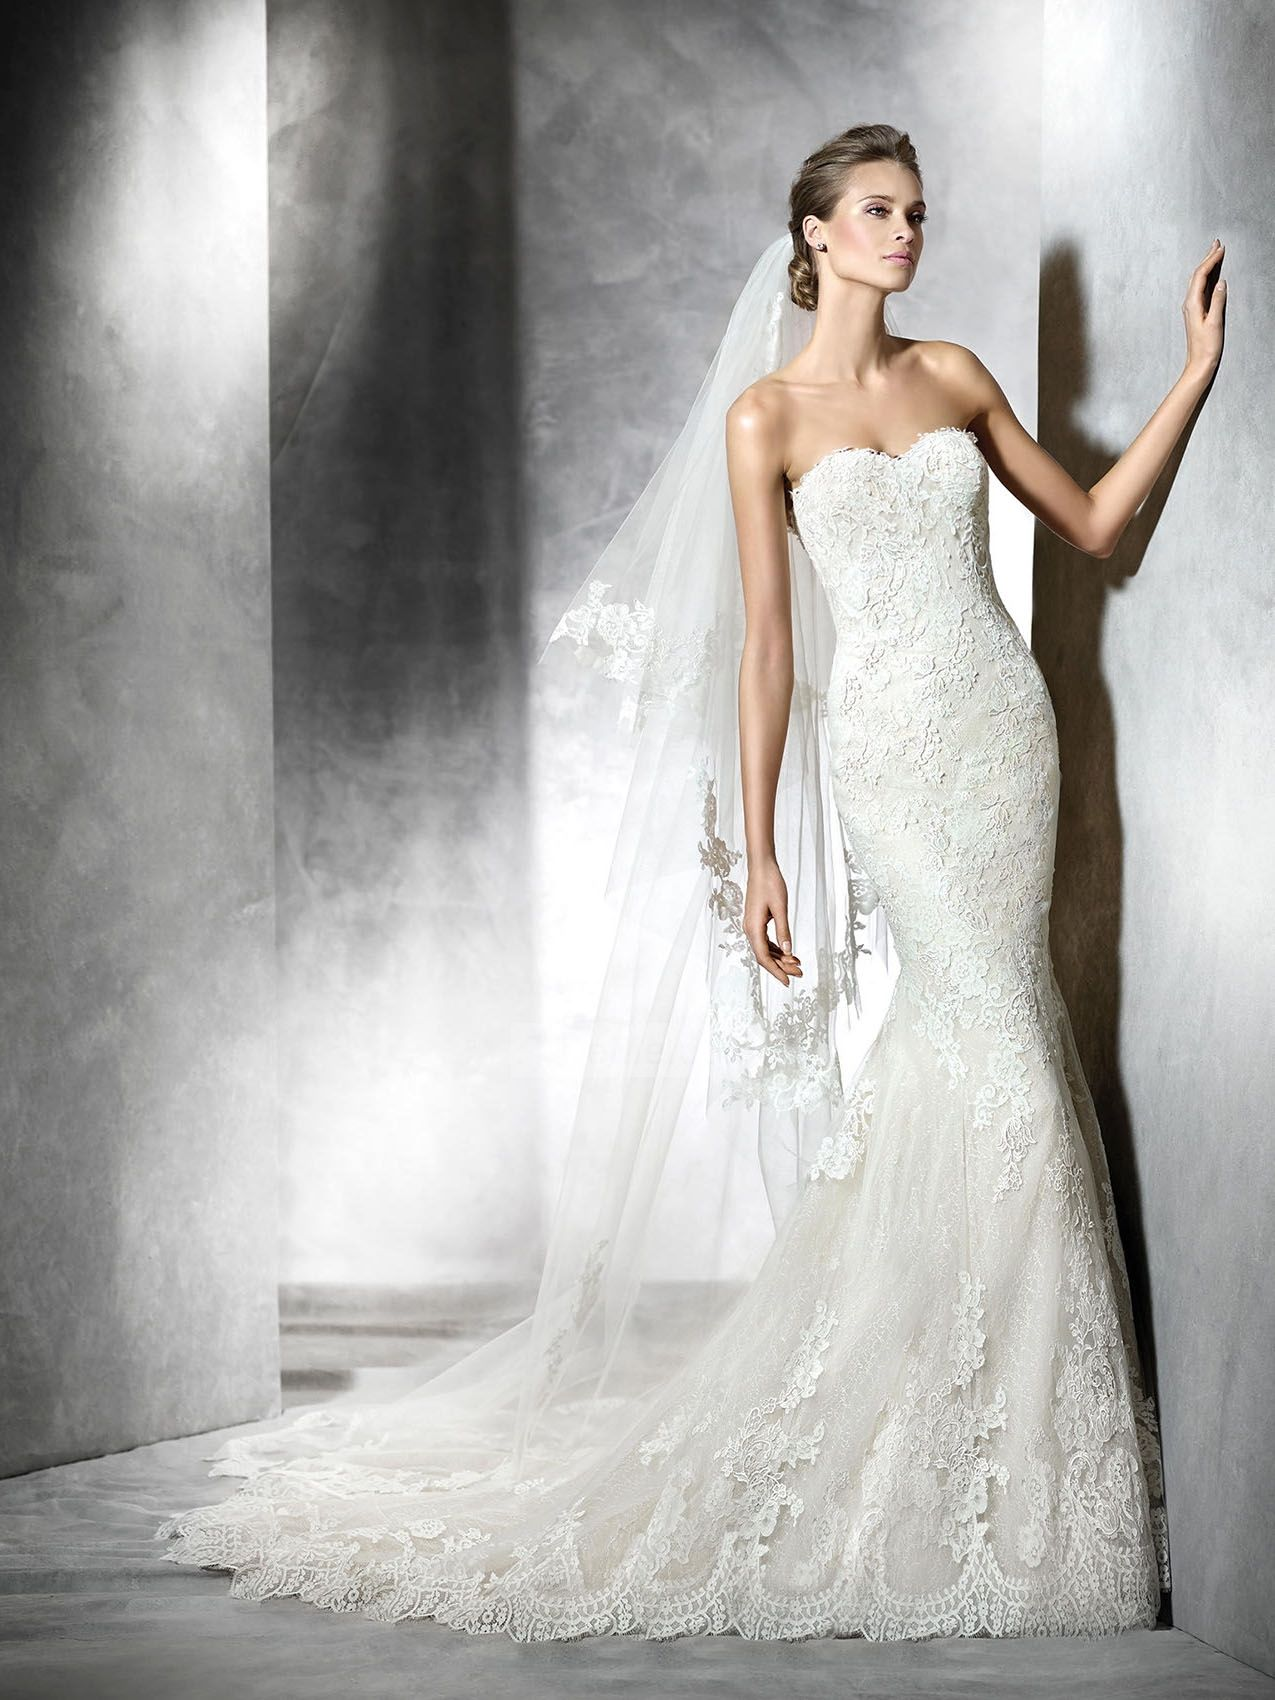 Fishtail wedding dress  Gorgeous Mermaid Strapless Sweetheart Lace Appliques Wedding Dresses